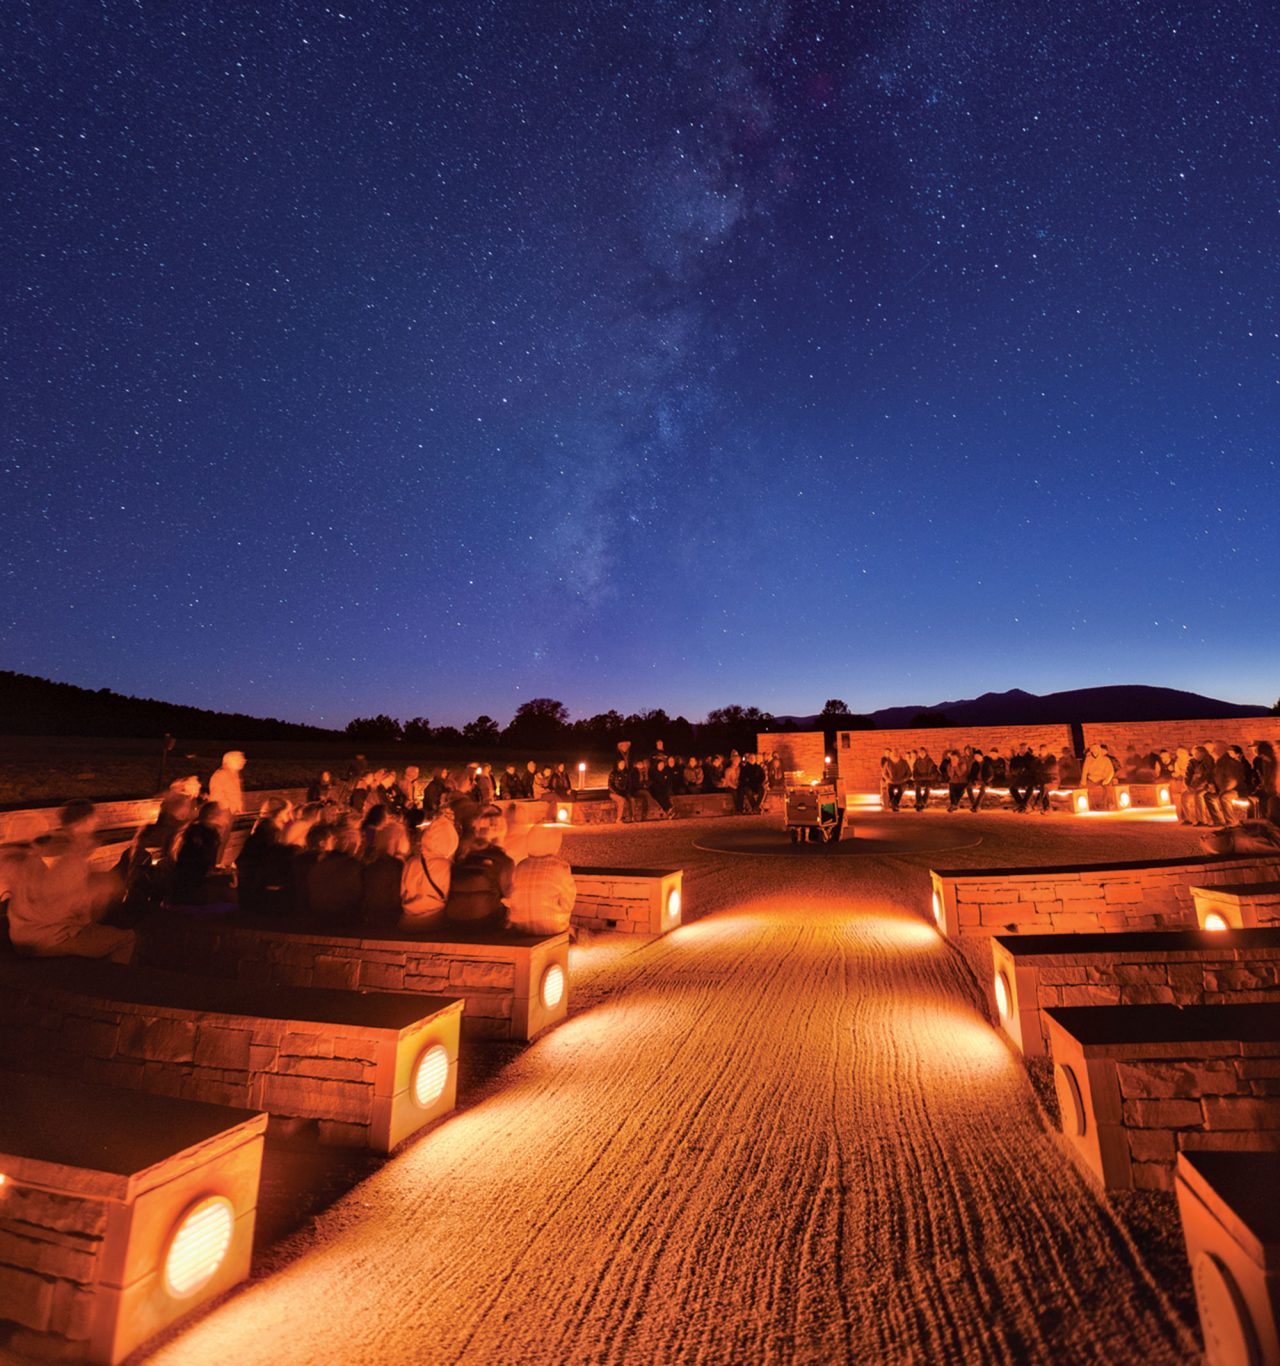 The Milky Way shines at McDonald Observatory; Photo by Ethan Tweedie Photography